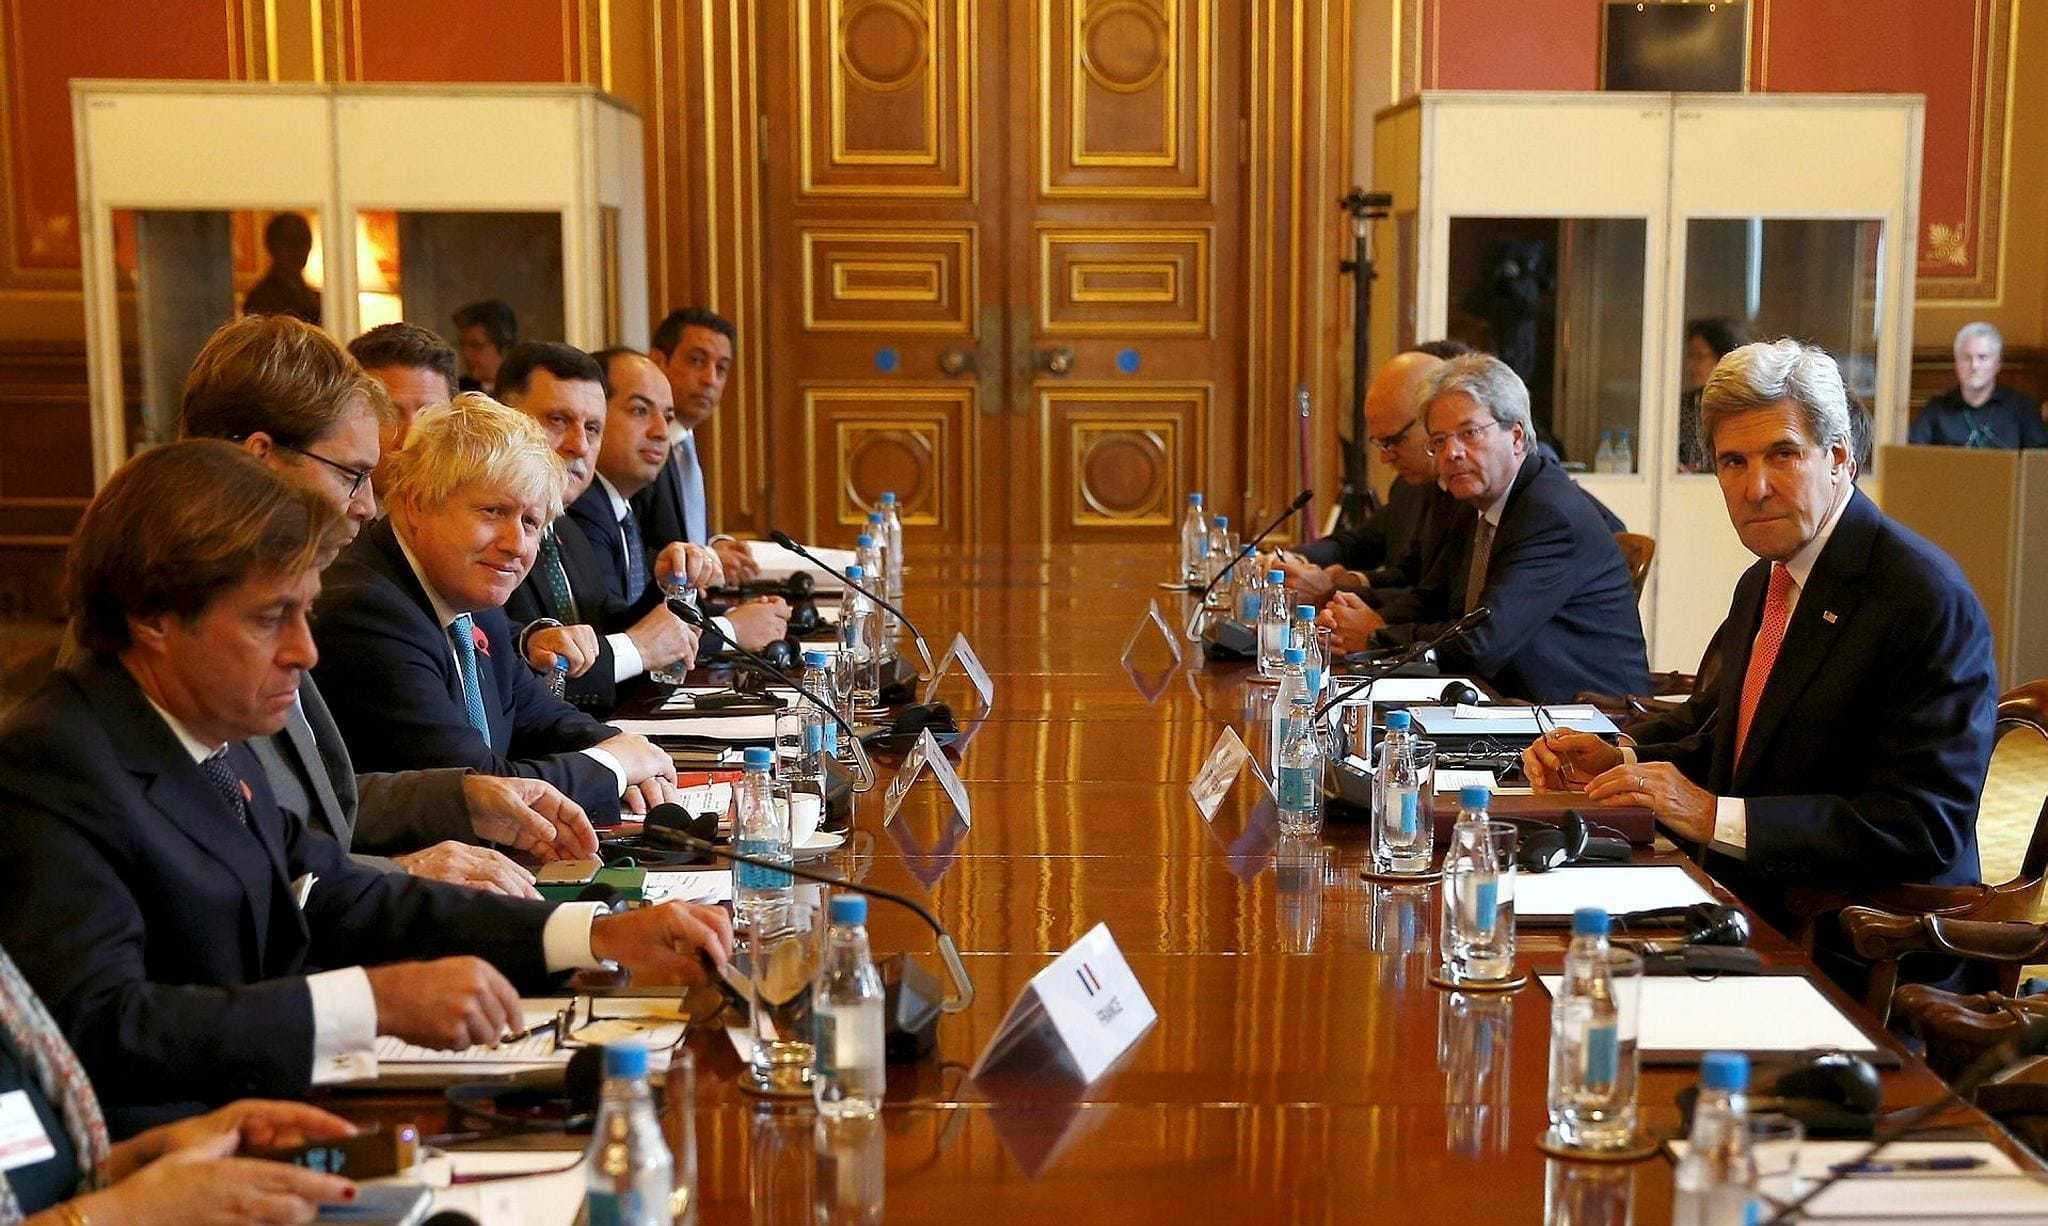 U.S. Secretary of State John Kerry attends the Libyan Ministerial meeting with Britain's Foreign Secretary Boris Johnson and Libya's Prime Minister and Deputy Prime minister, at the Foreign and Commonwealth Office in London, Britain, Oct. 31.